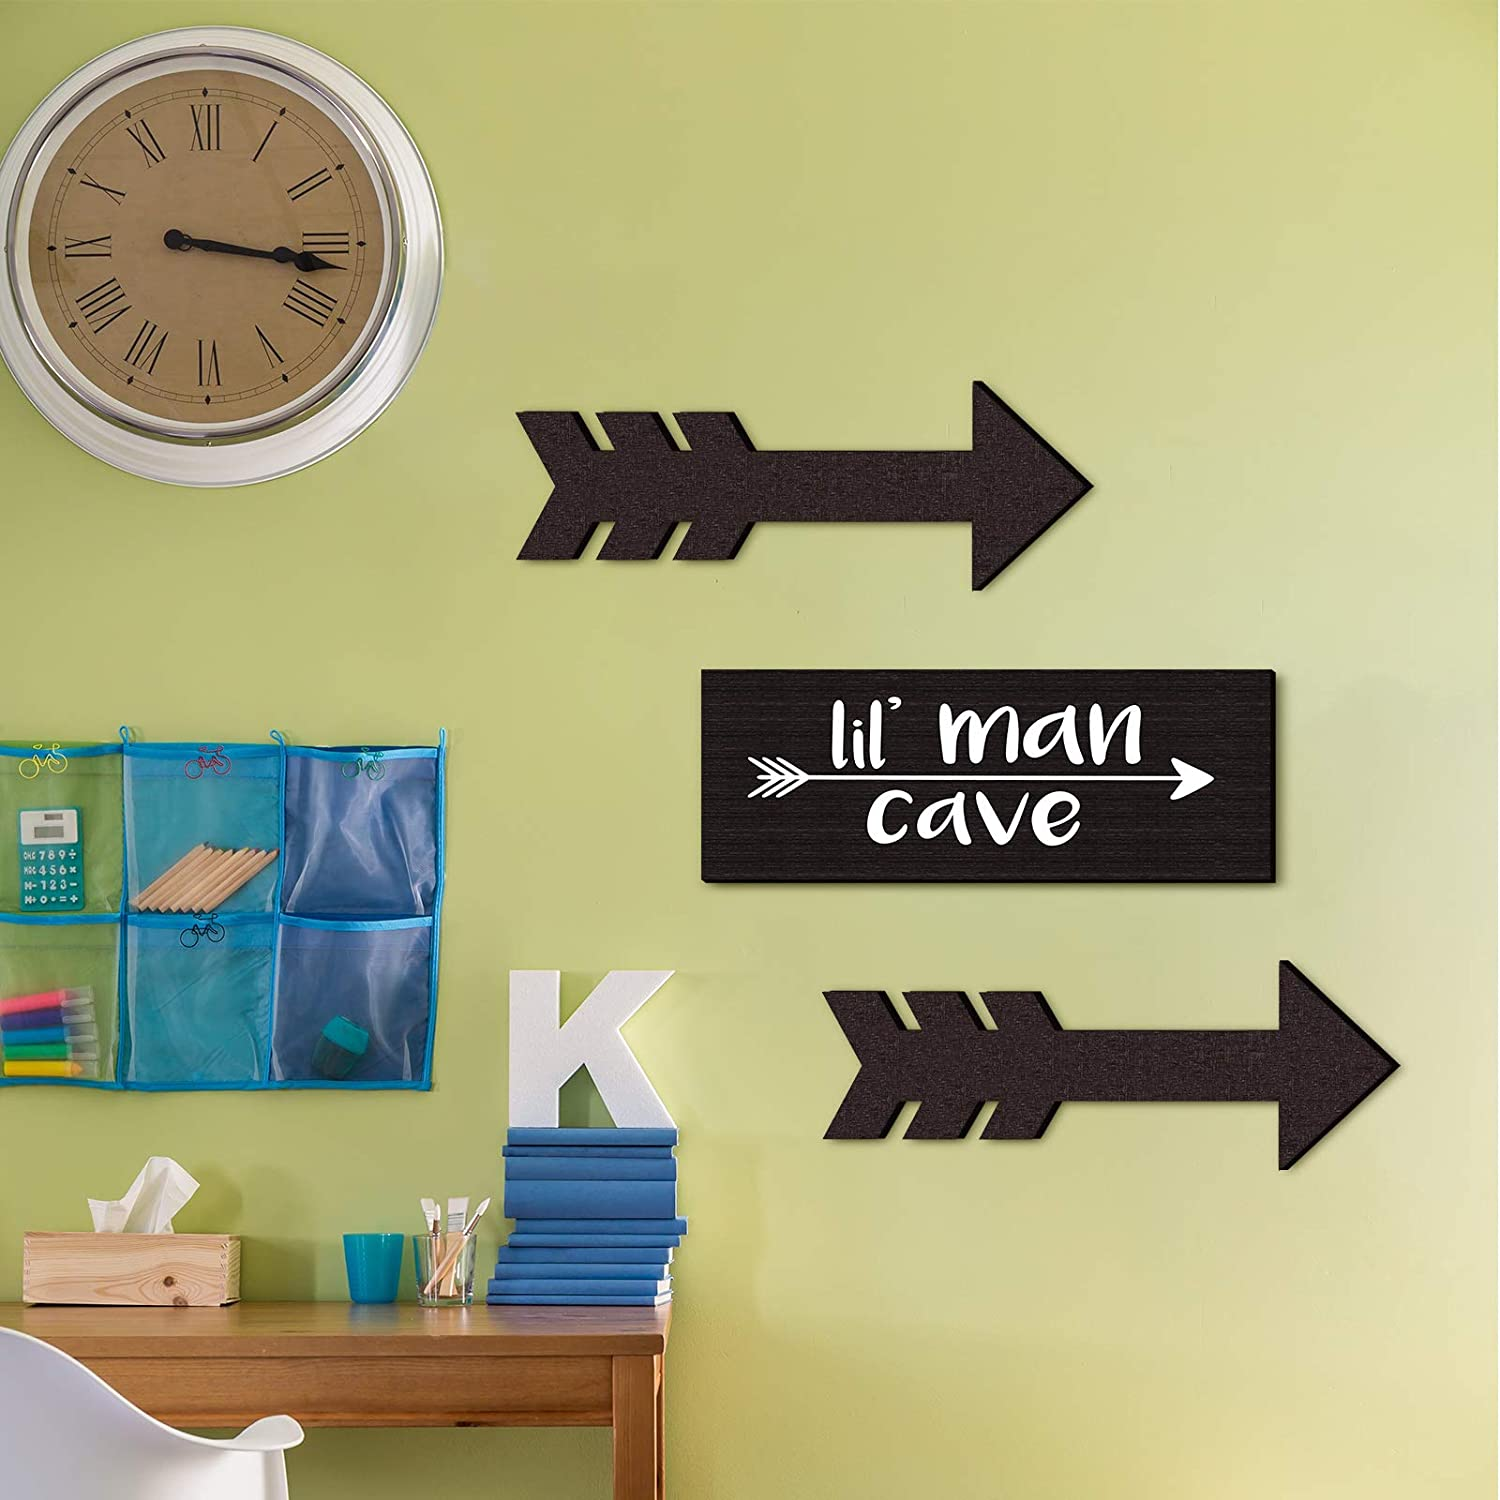 3 Pieces Lil Man Cave Wooden Sign Rustic Little Boys Nursery Wall Decor with 2 Wooden Arrow Hanging Signs Decorative Wood Plaque for Little Baby Boy or Toddler Kids Bedroom Sign